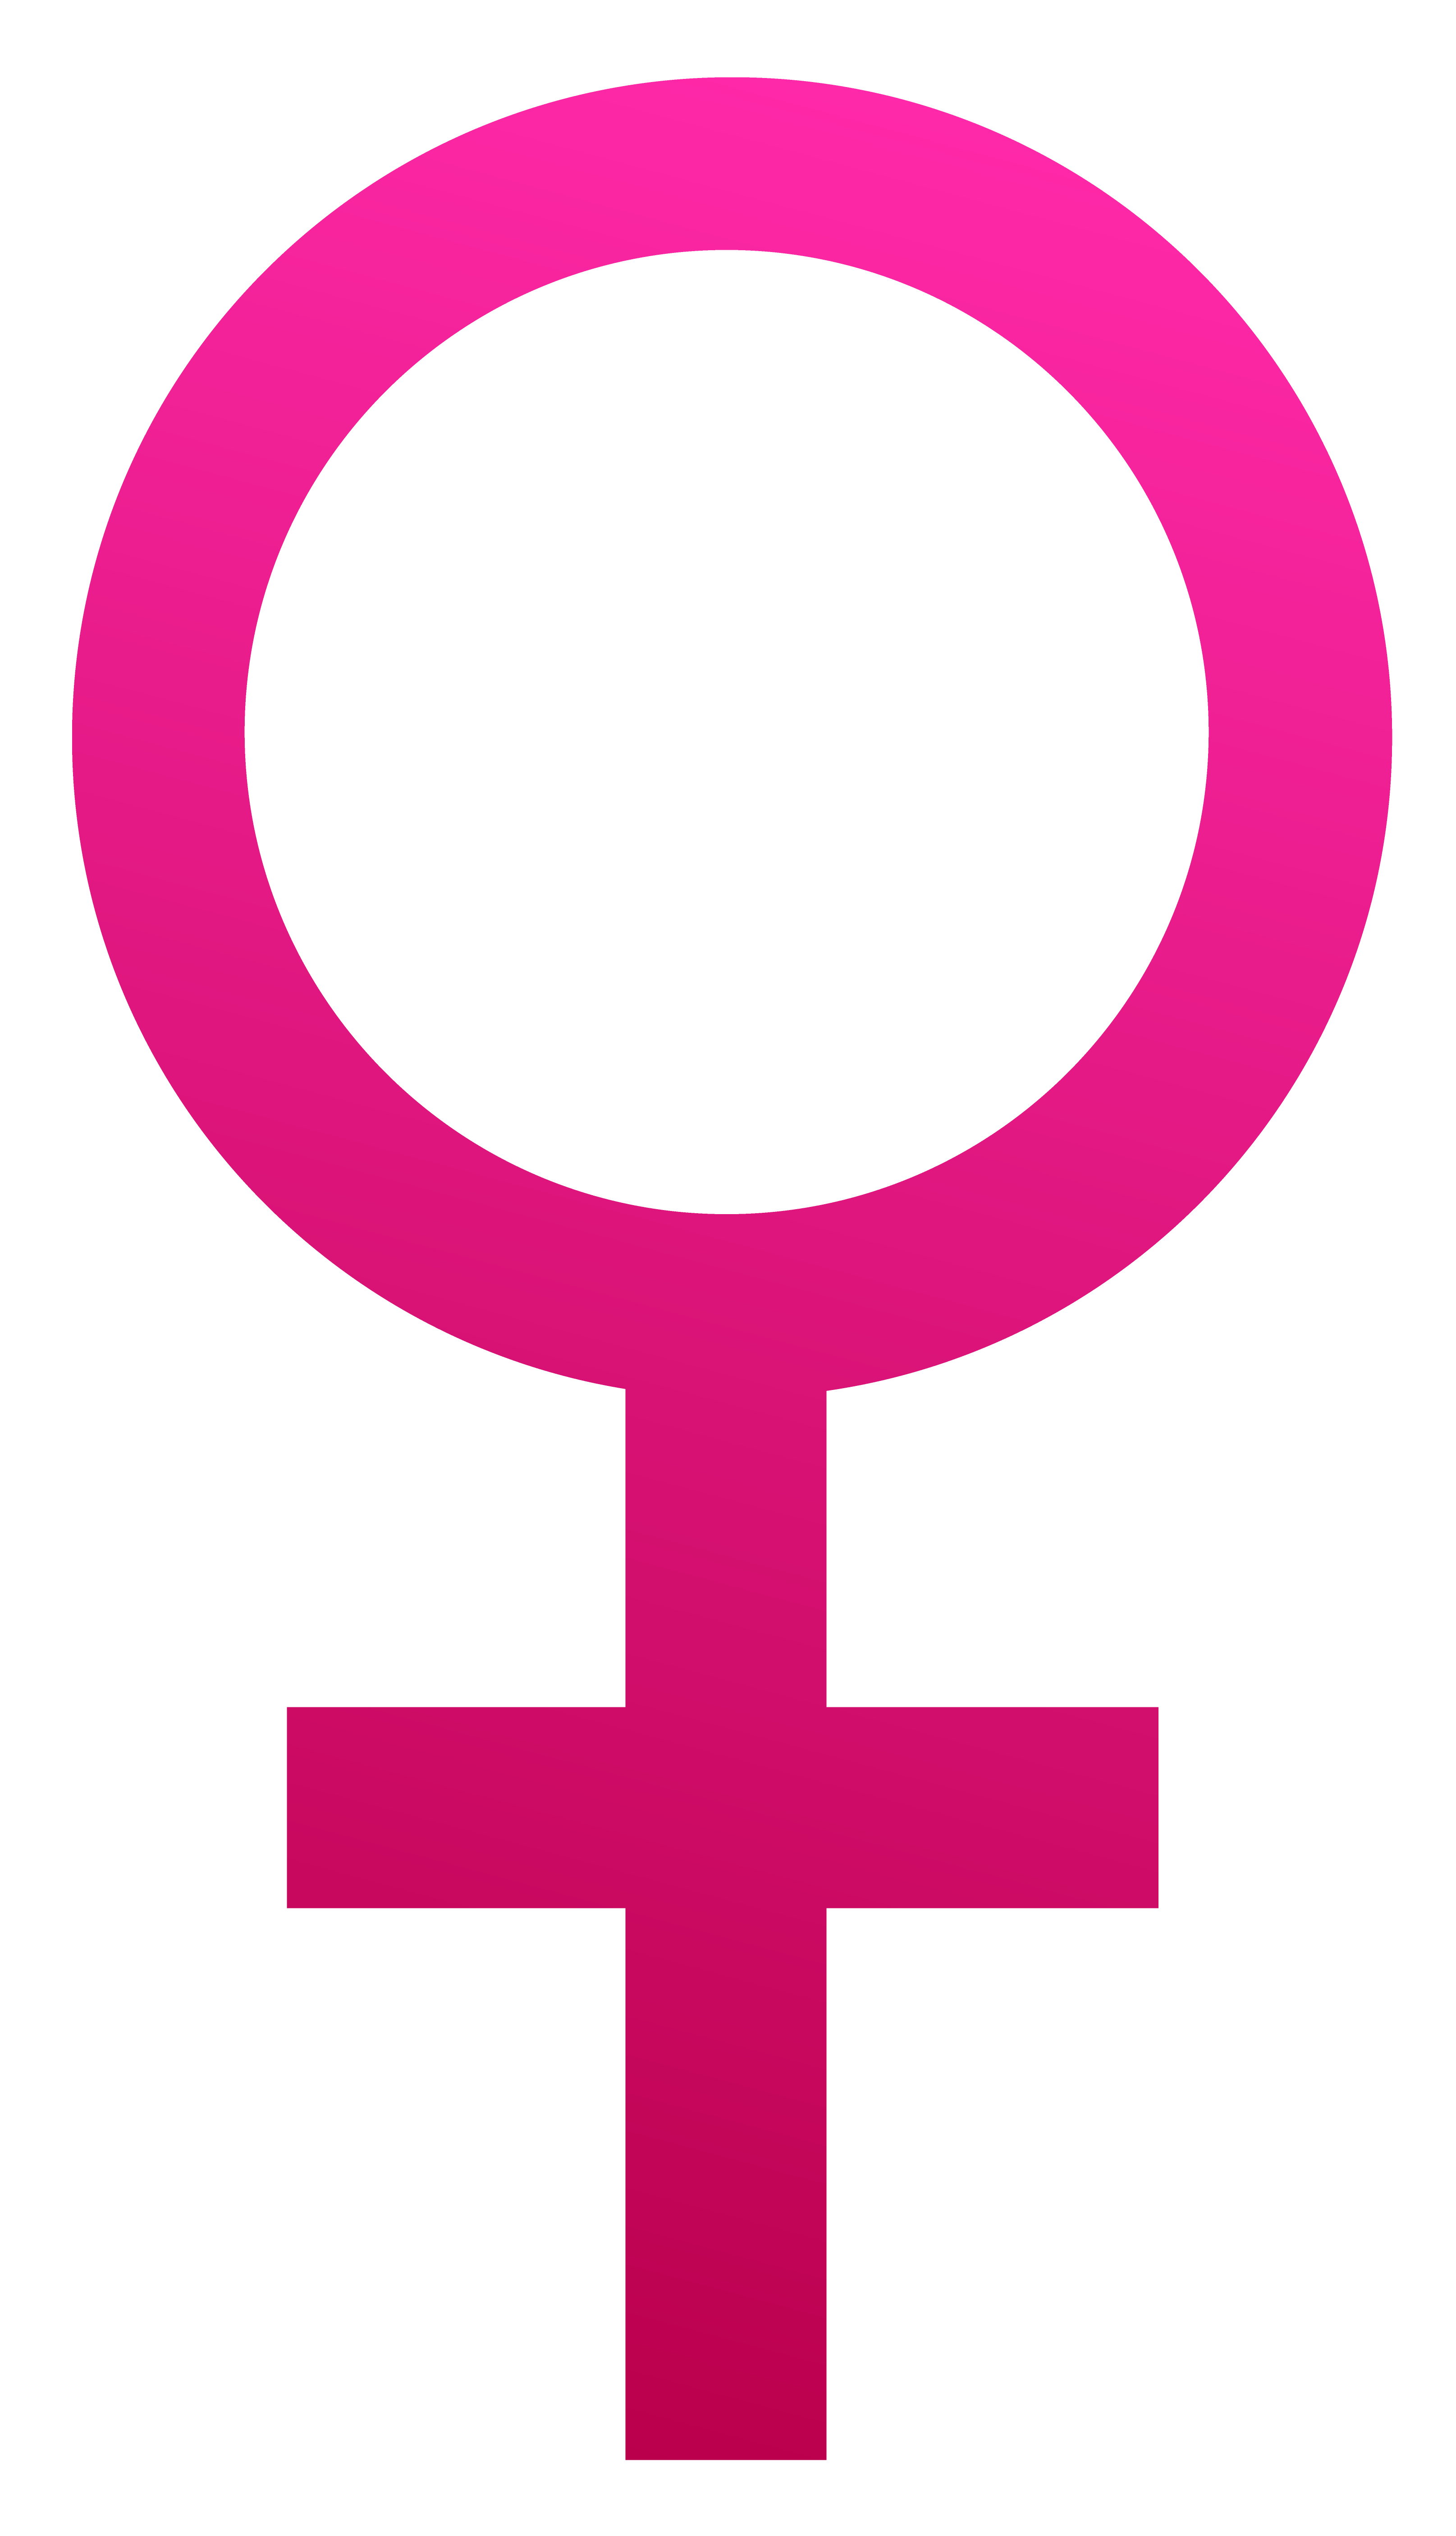 Woman symbol png. Of icons vector free